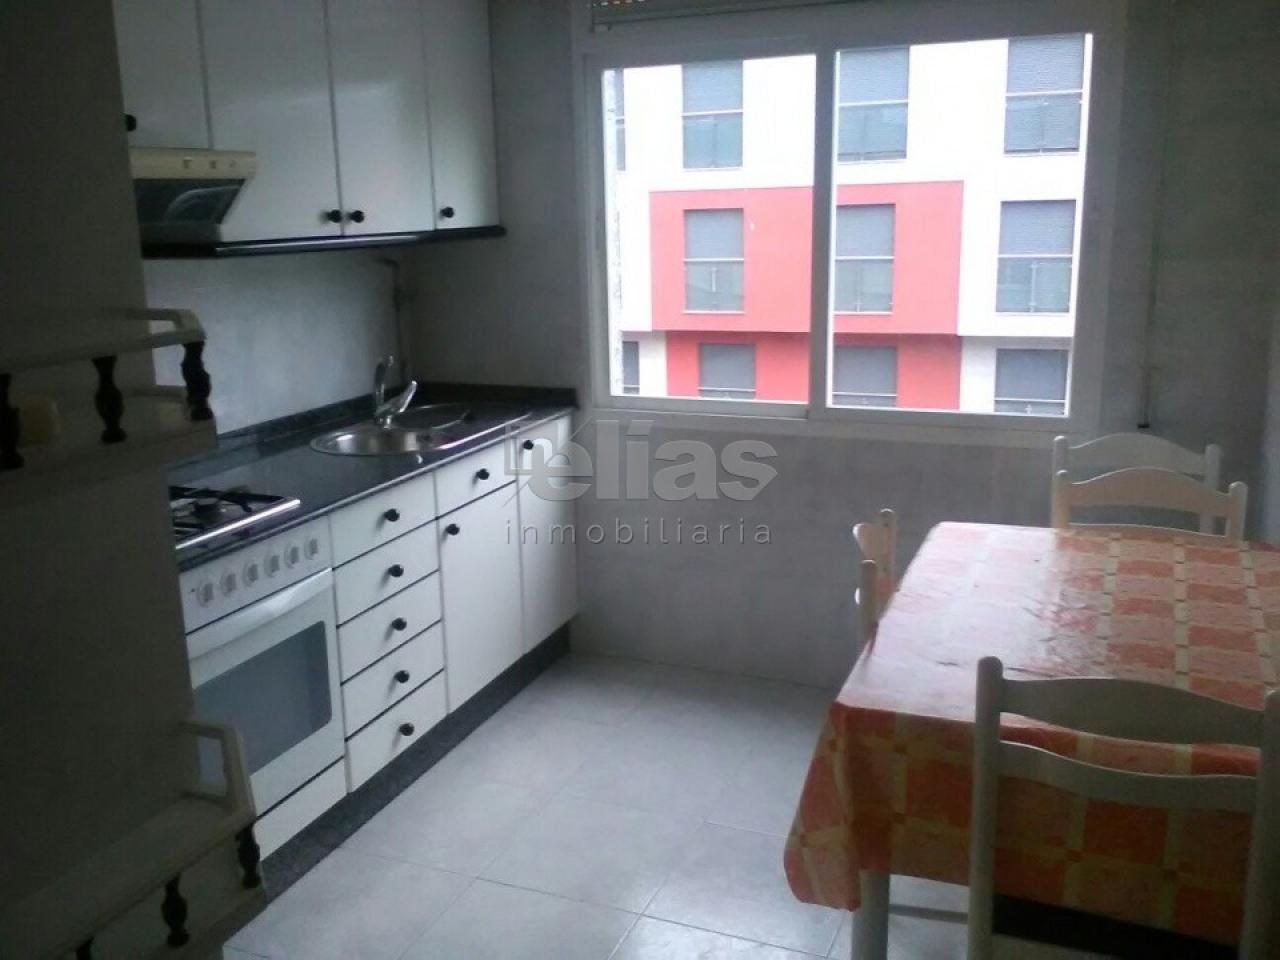 Piso-Alquiler-Laxe-Laxe-P000025-4